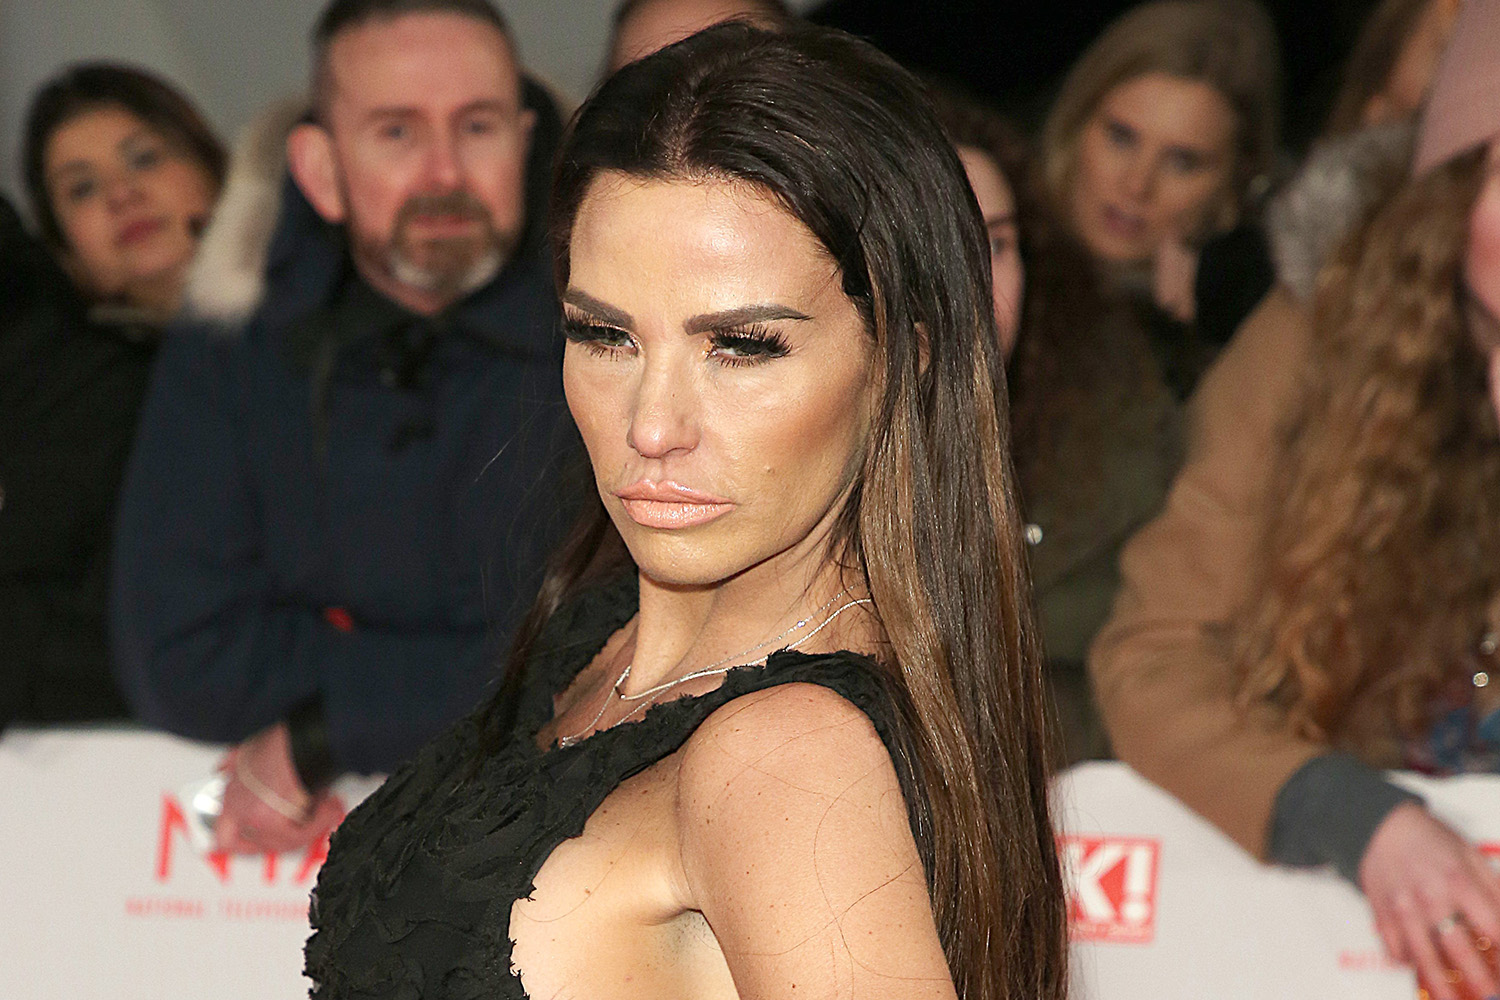 Katie Price's exes Peter Andre and Kieran Hayler 'in contact with each other to offer her help'